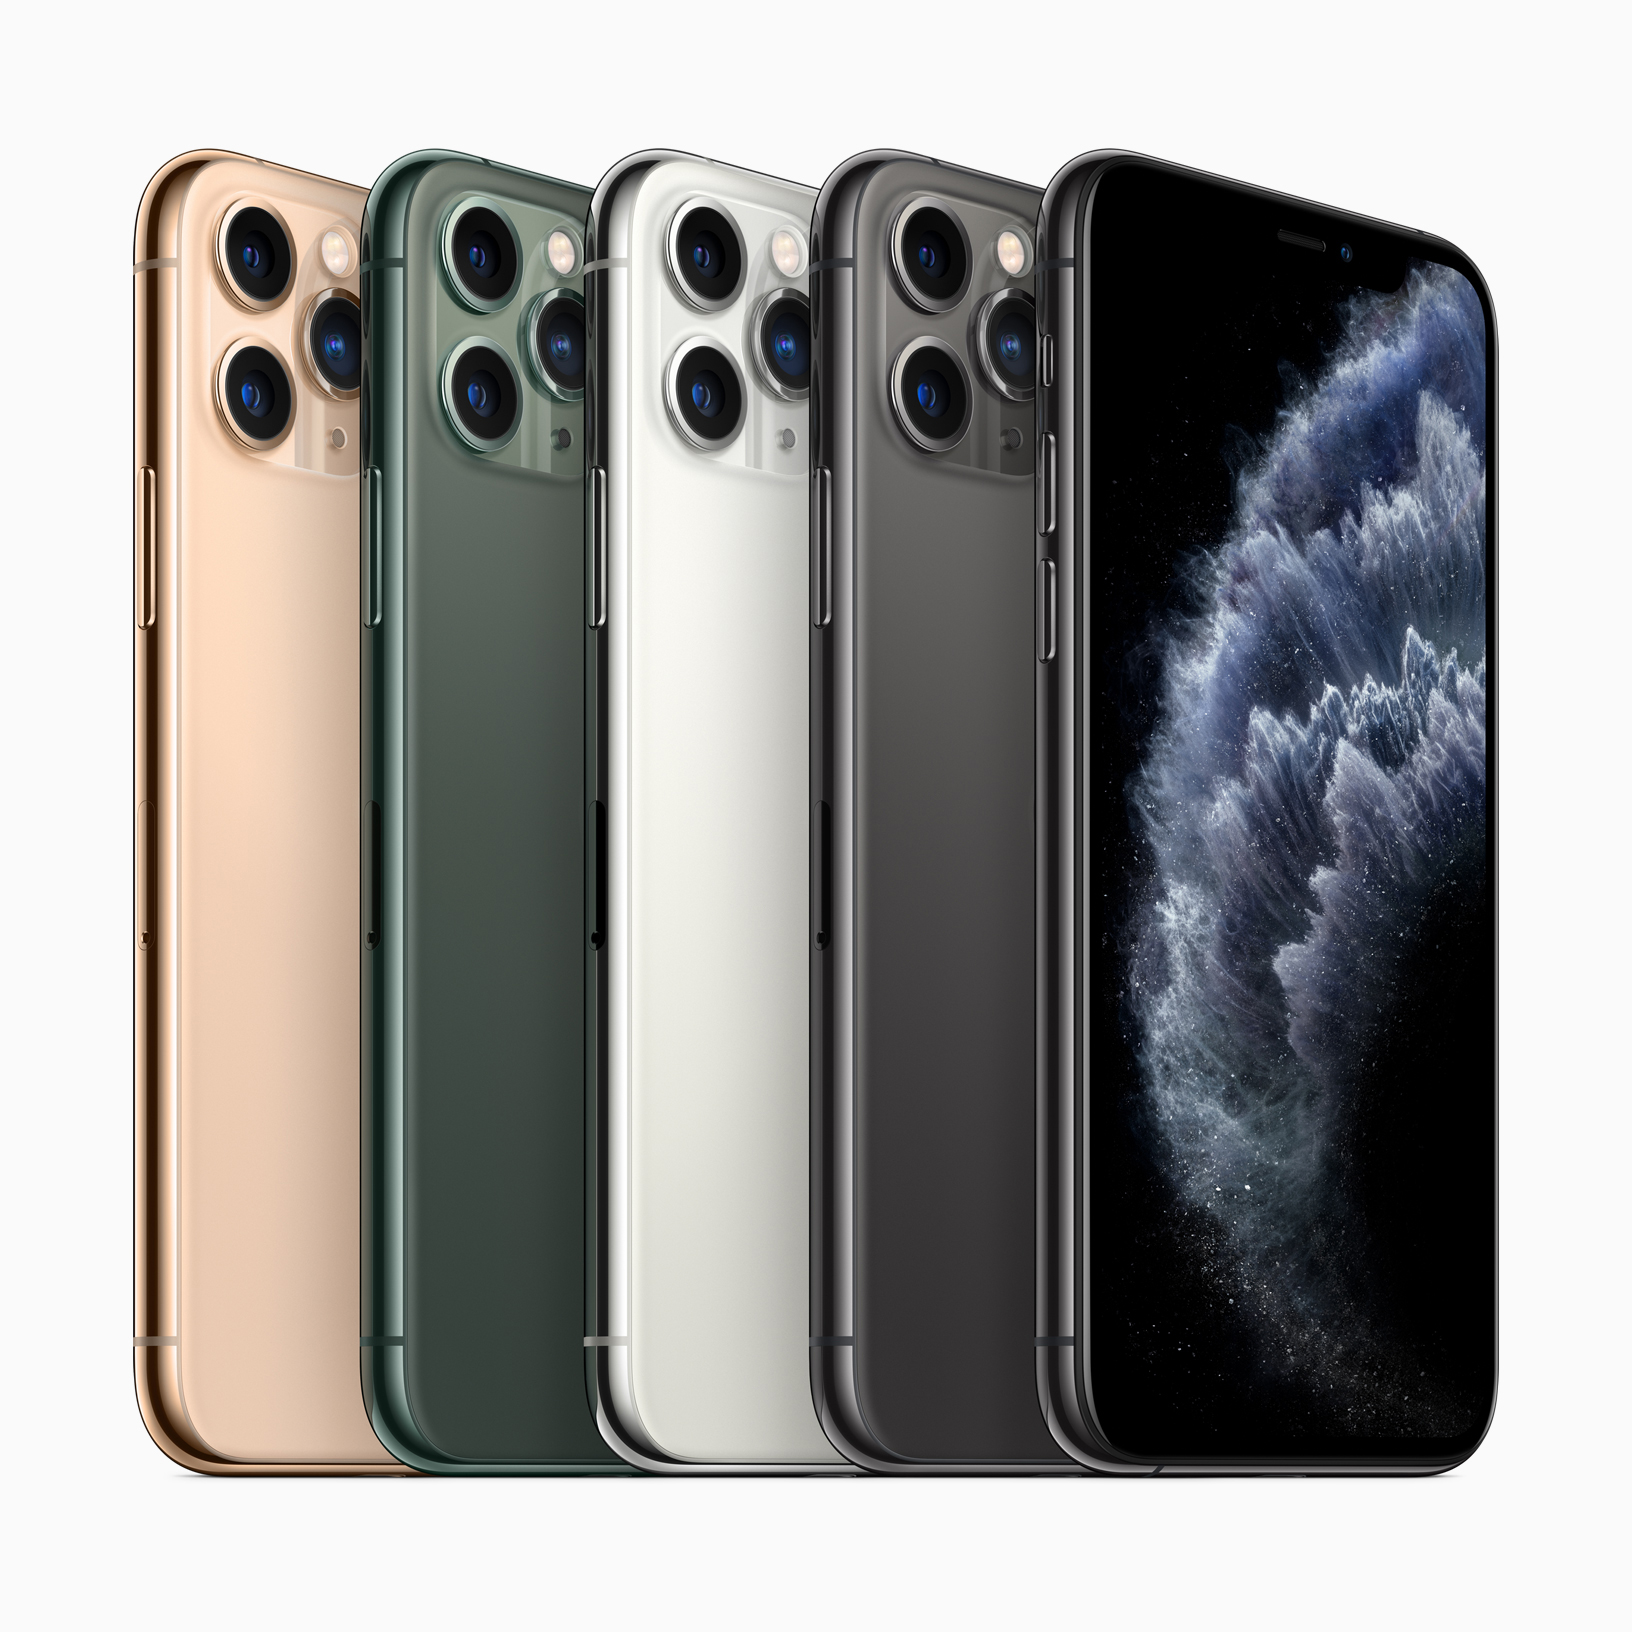 iPhone 11 Pro and iPhone 11 Pro Max come in gorgeous midnight green, space gray, silver and gold finishes. (Image via Apple)